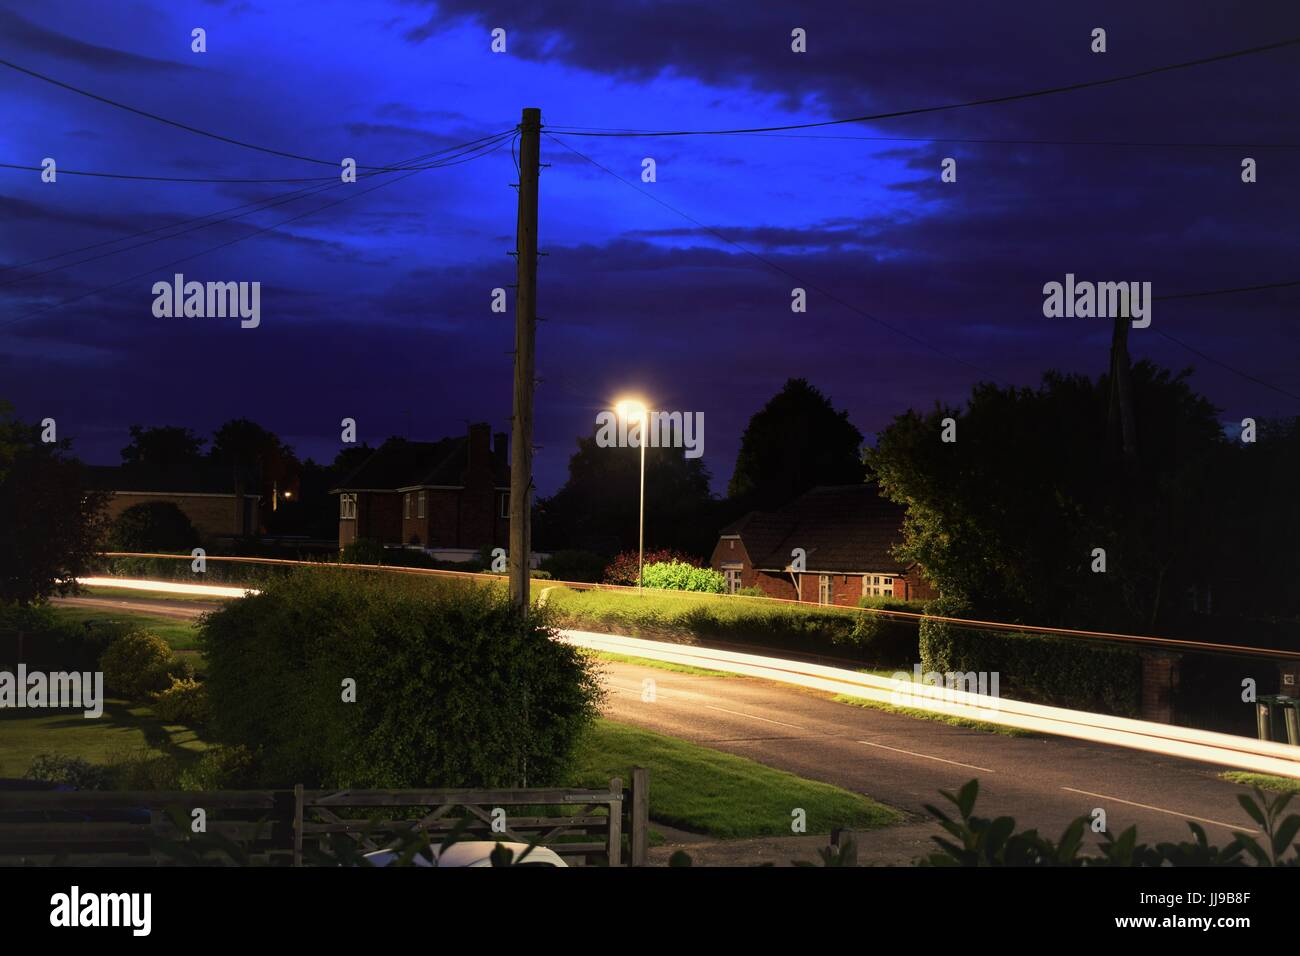 Light trail in a small village. - Stock Image